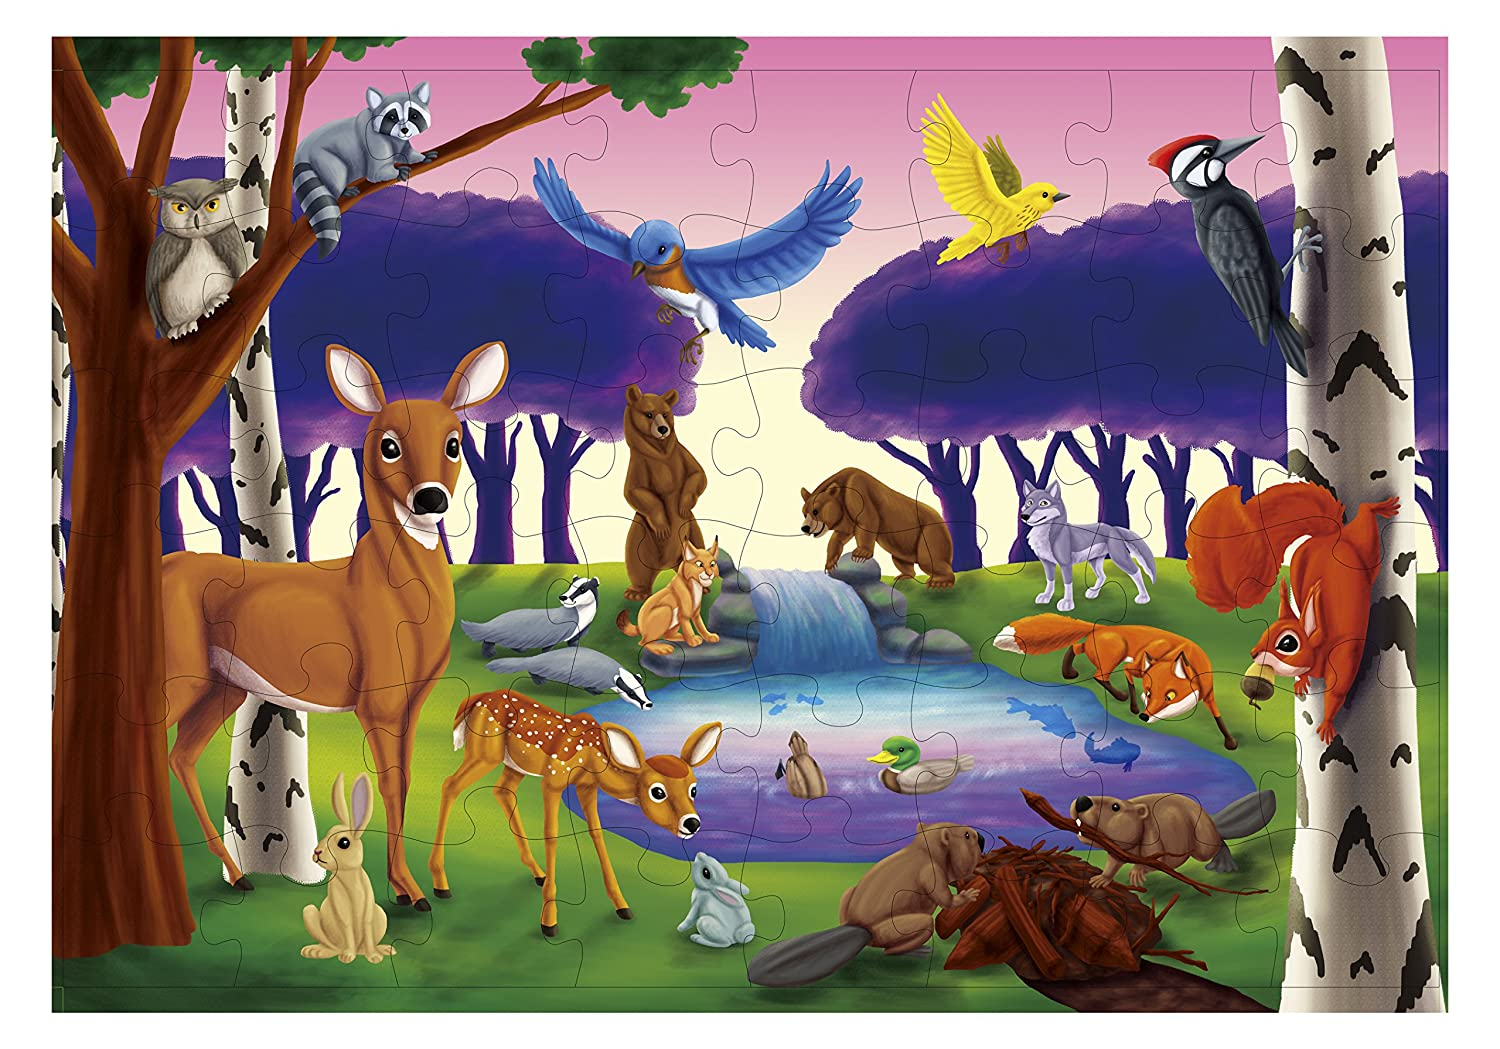 Floor Puzzles – 48 Piece Giant Floor Puzzle, Woodland Animals Jumbo Preschool Jigsaw Puzzles for Toddlers, Toy Puzzles for Kids Ages 3-5, 1.9 x 2.9 Feet Juvale